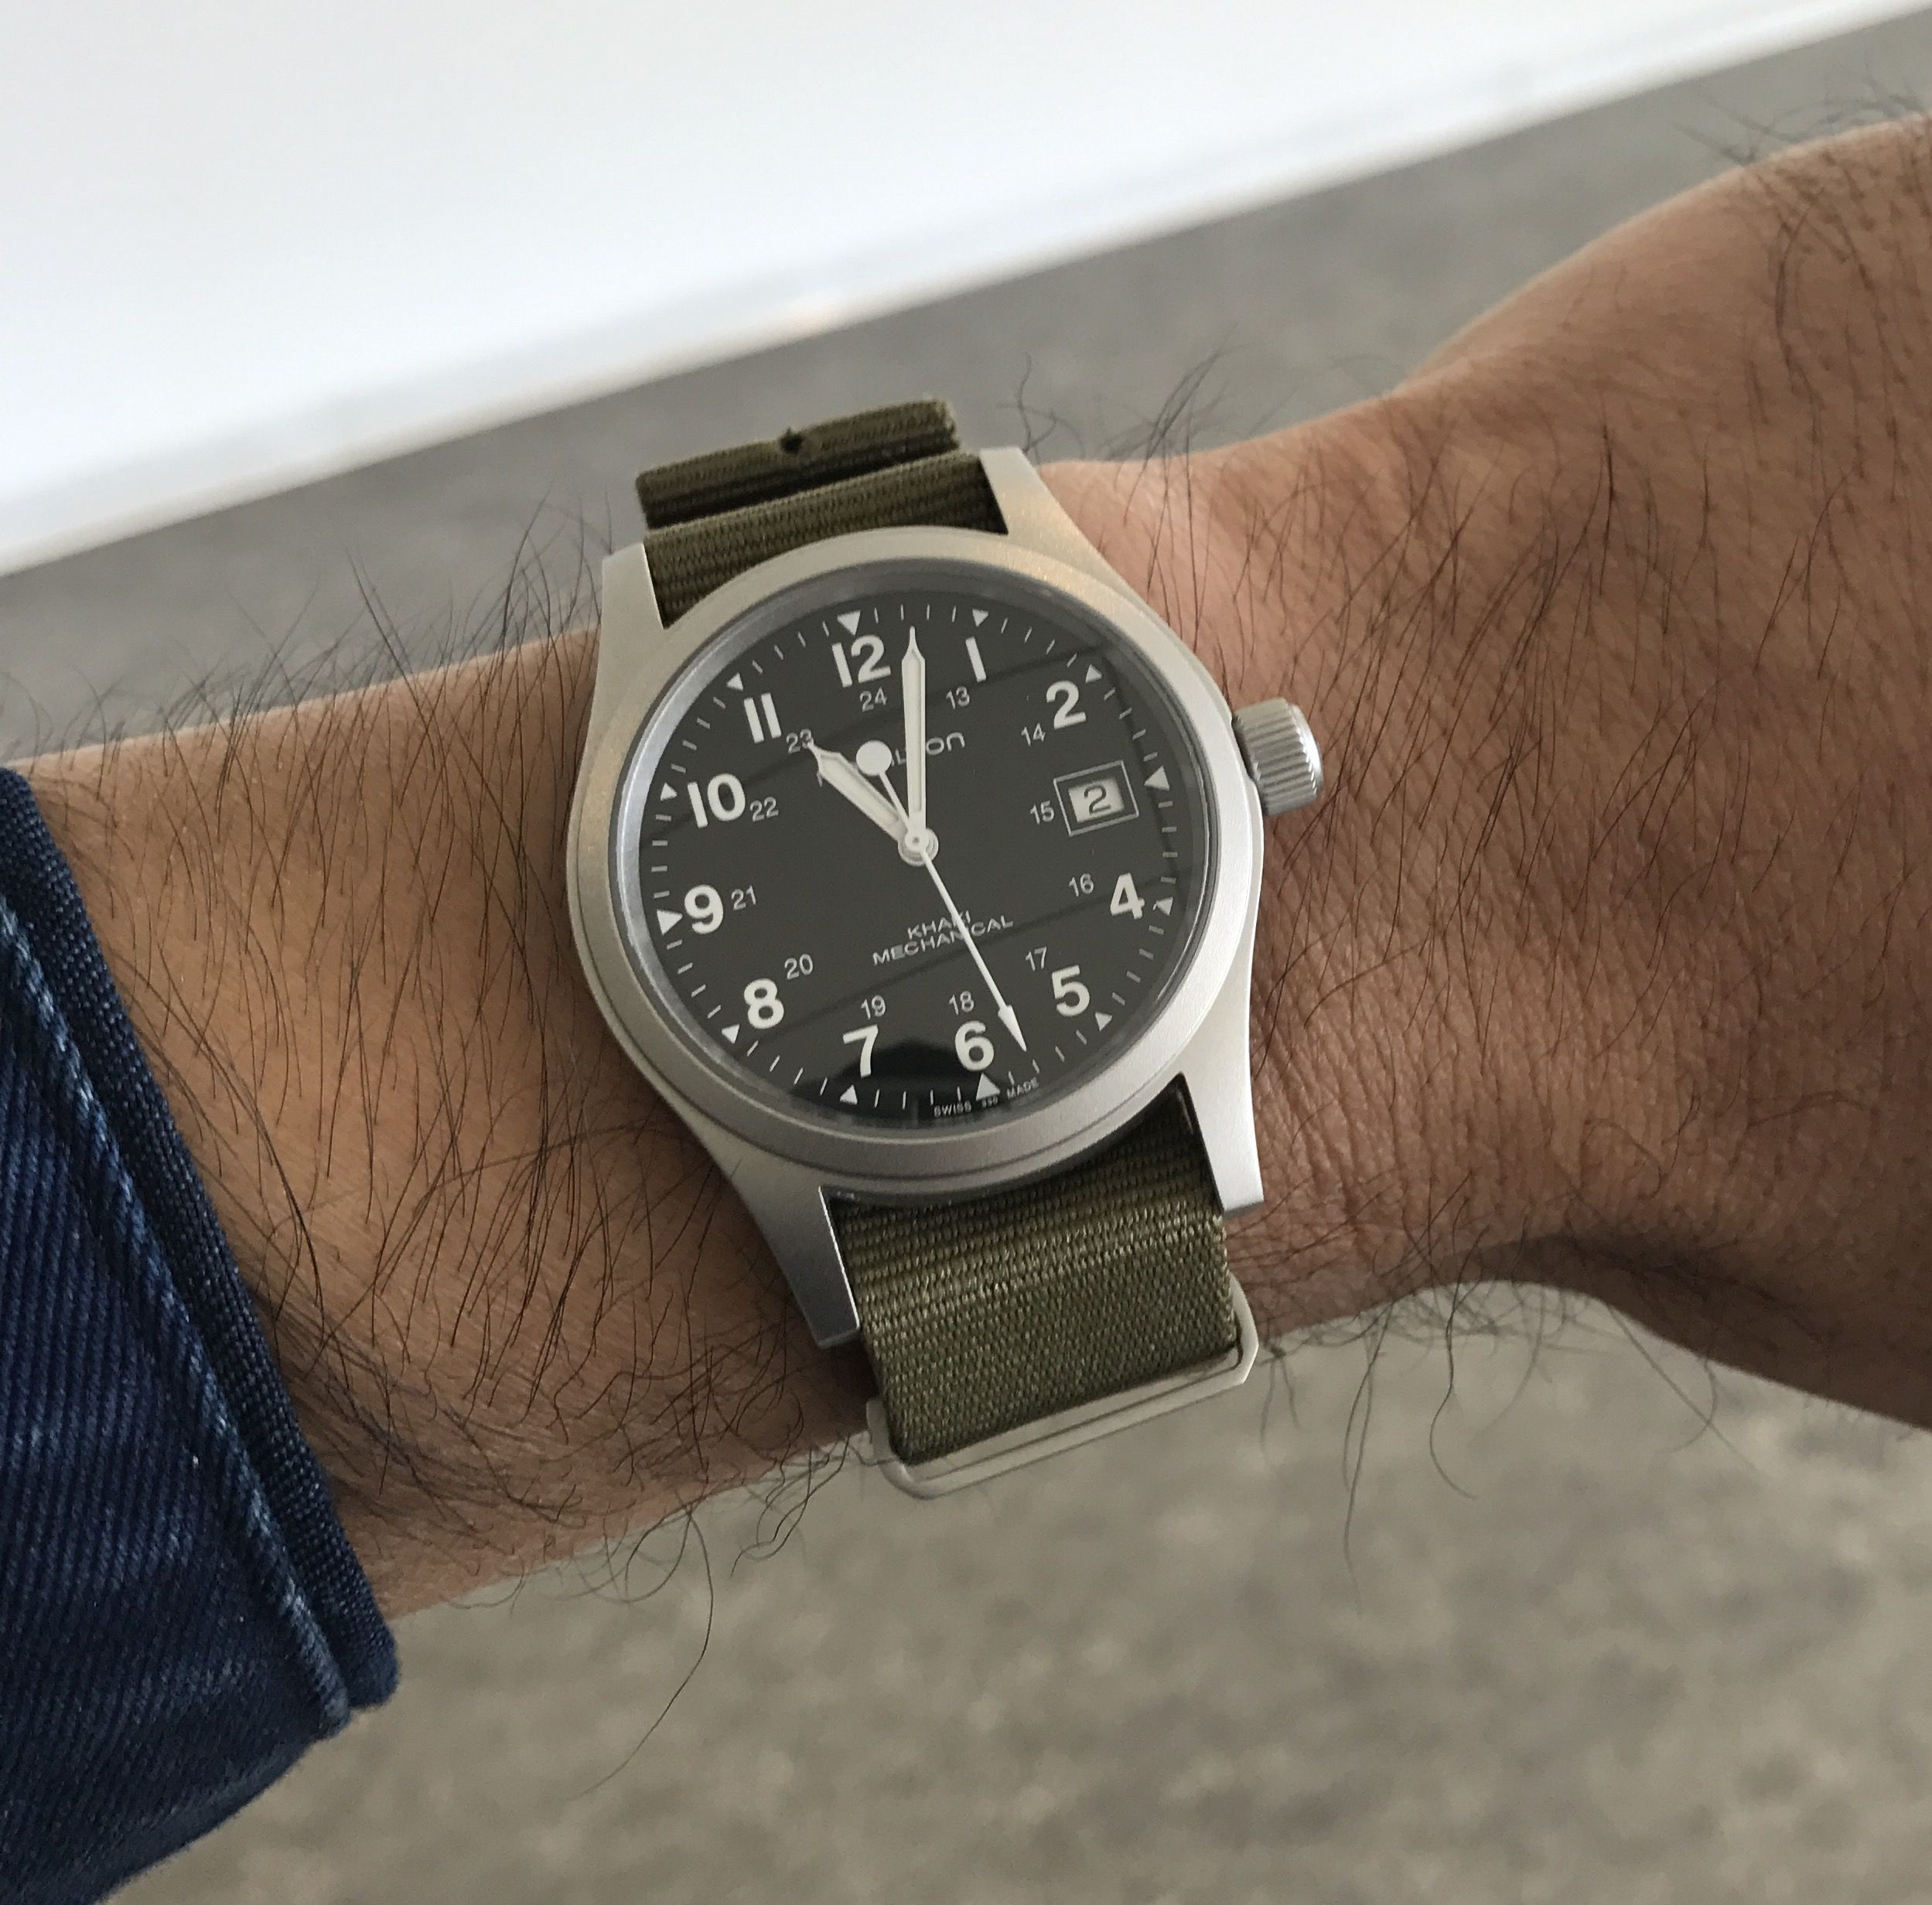 Hamilton Khaki Field Expensive Watches Watches For Men Field Watches